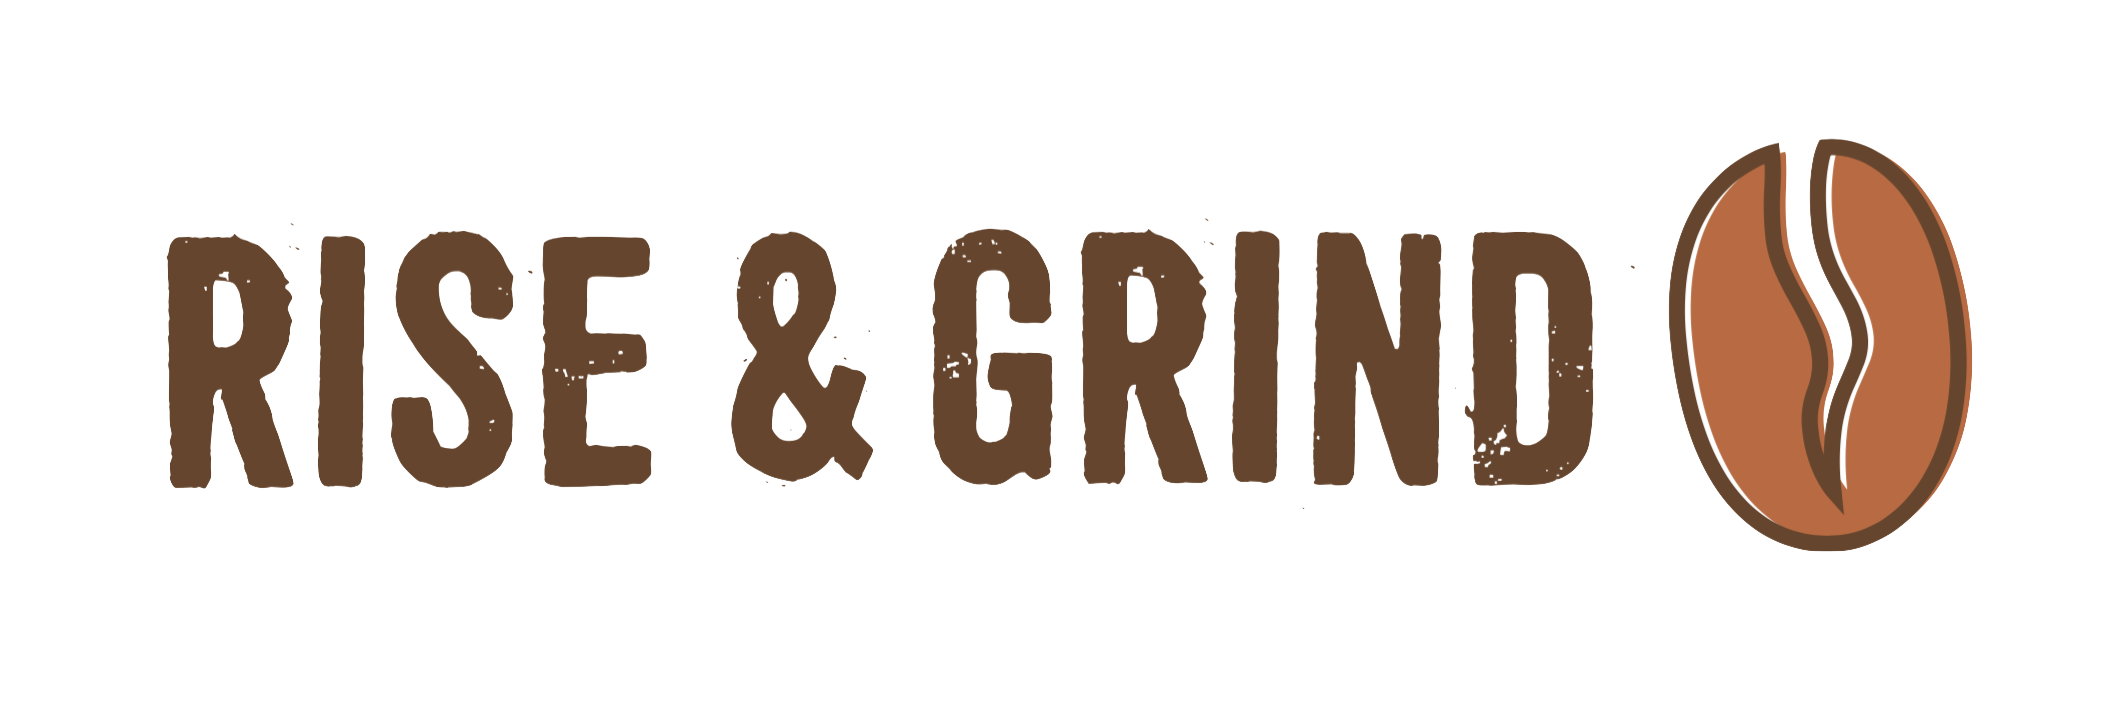 Rise and Grind Logo NBG copy